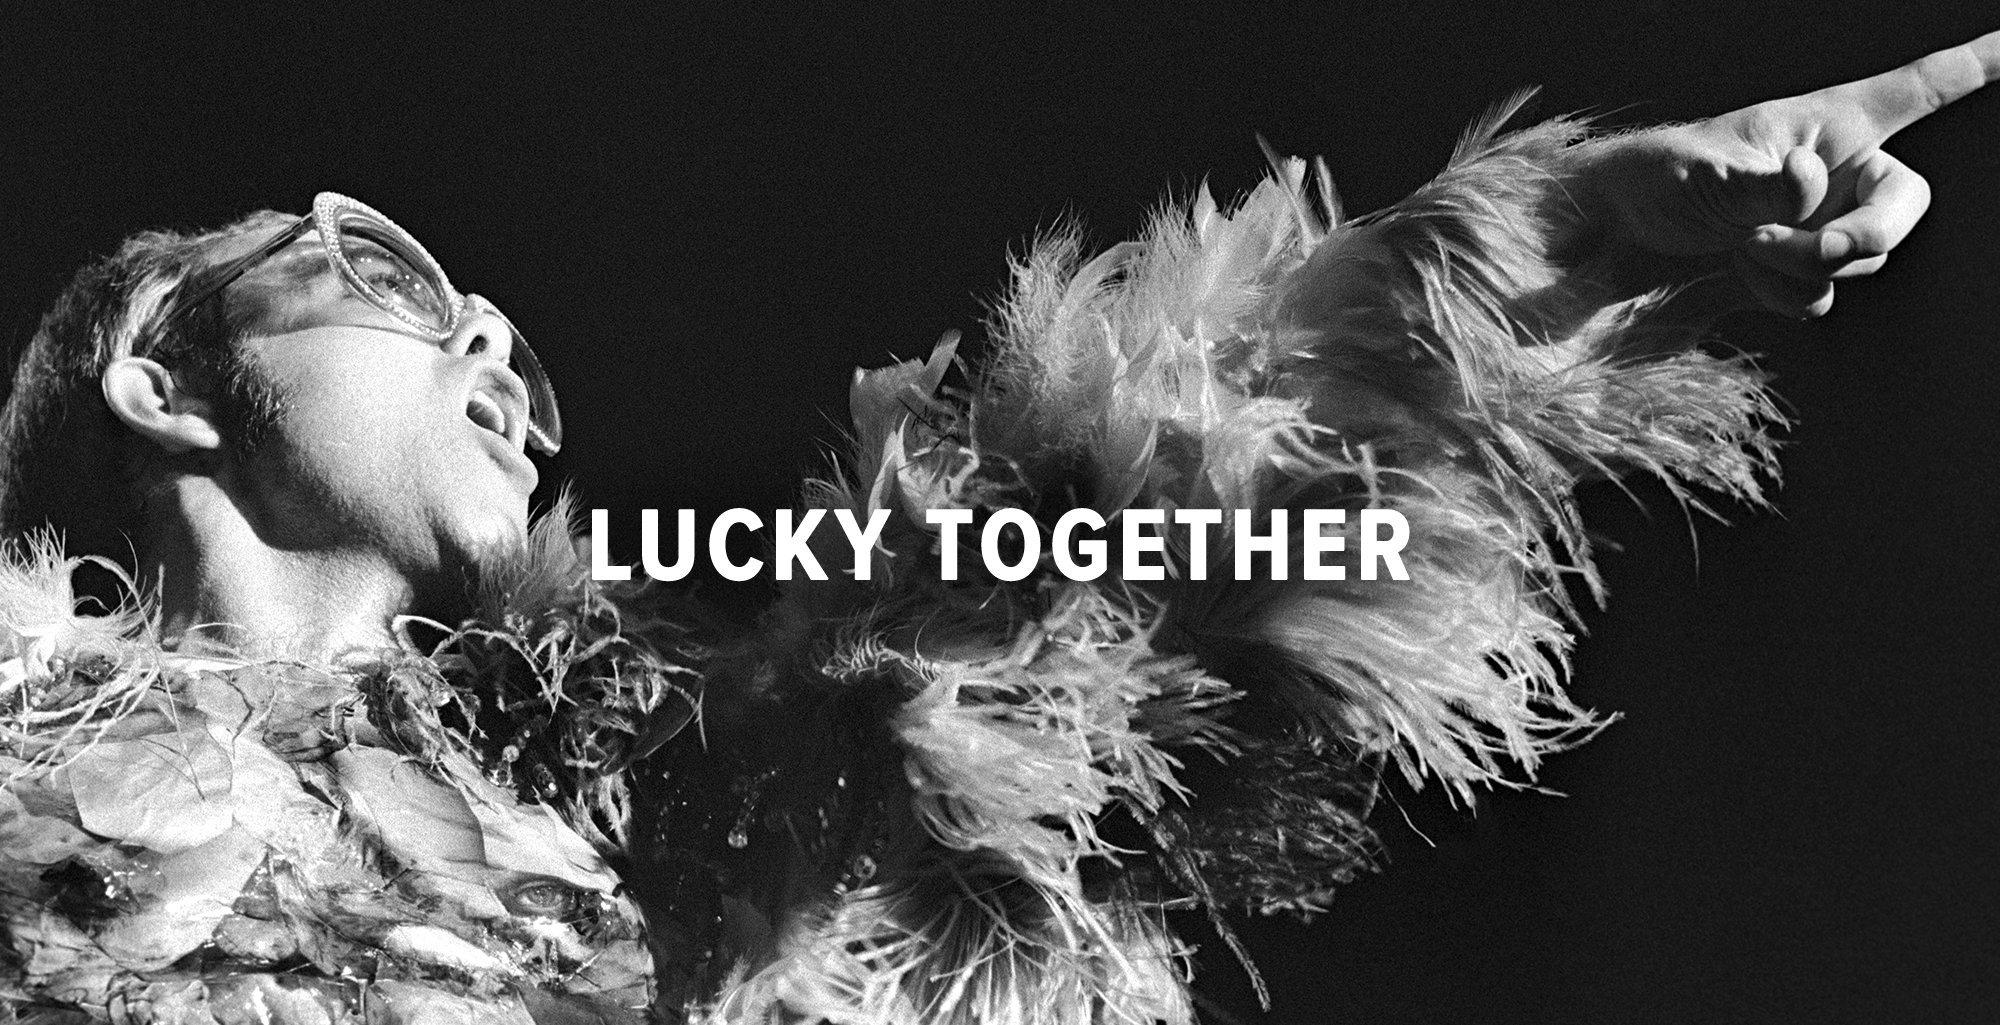 lucky together